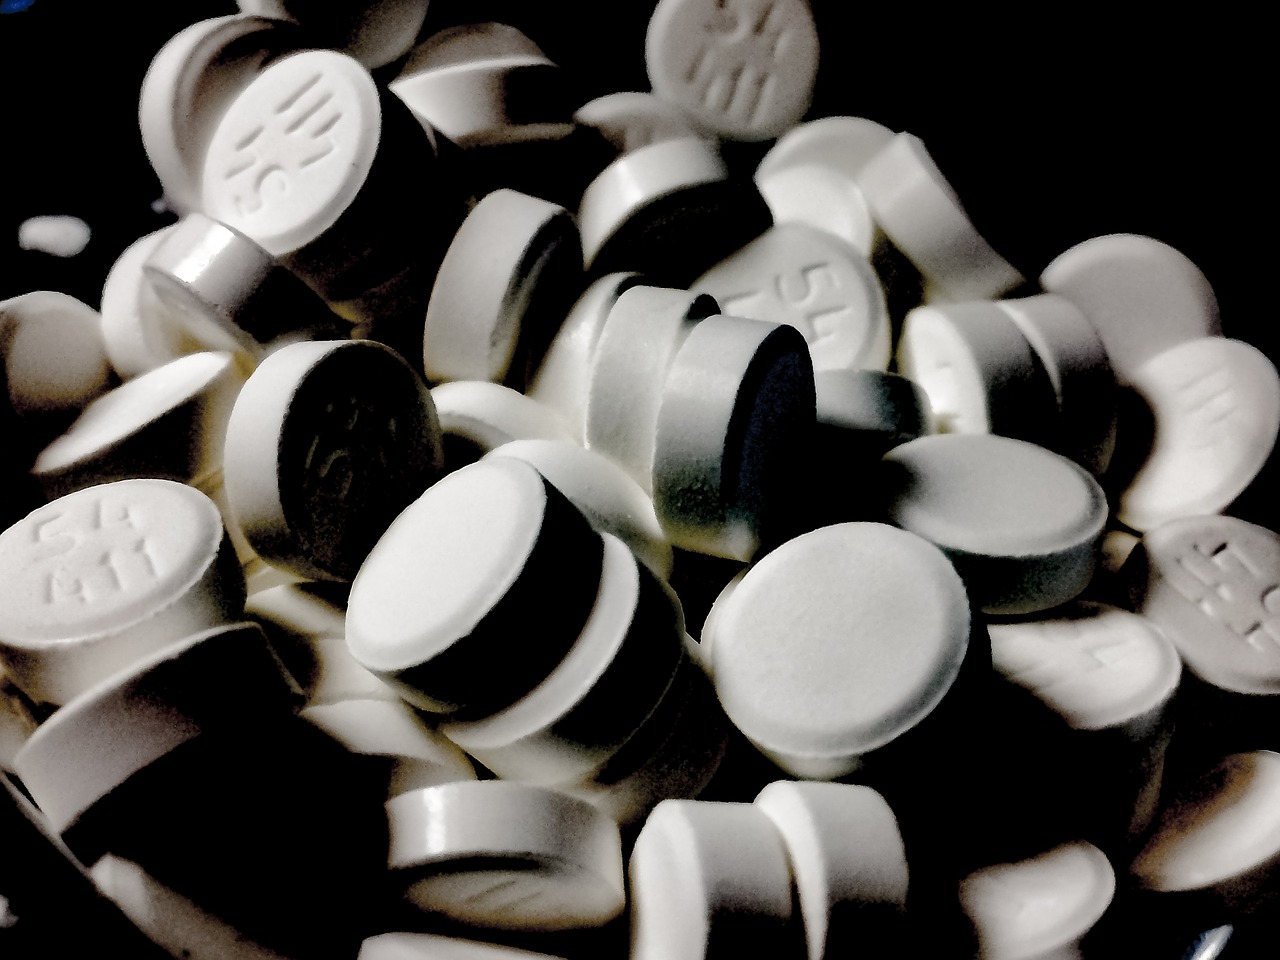 A pile of buprenorphine sublingual tablets.